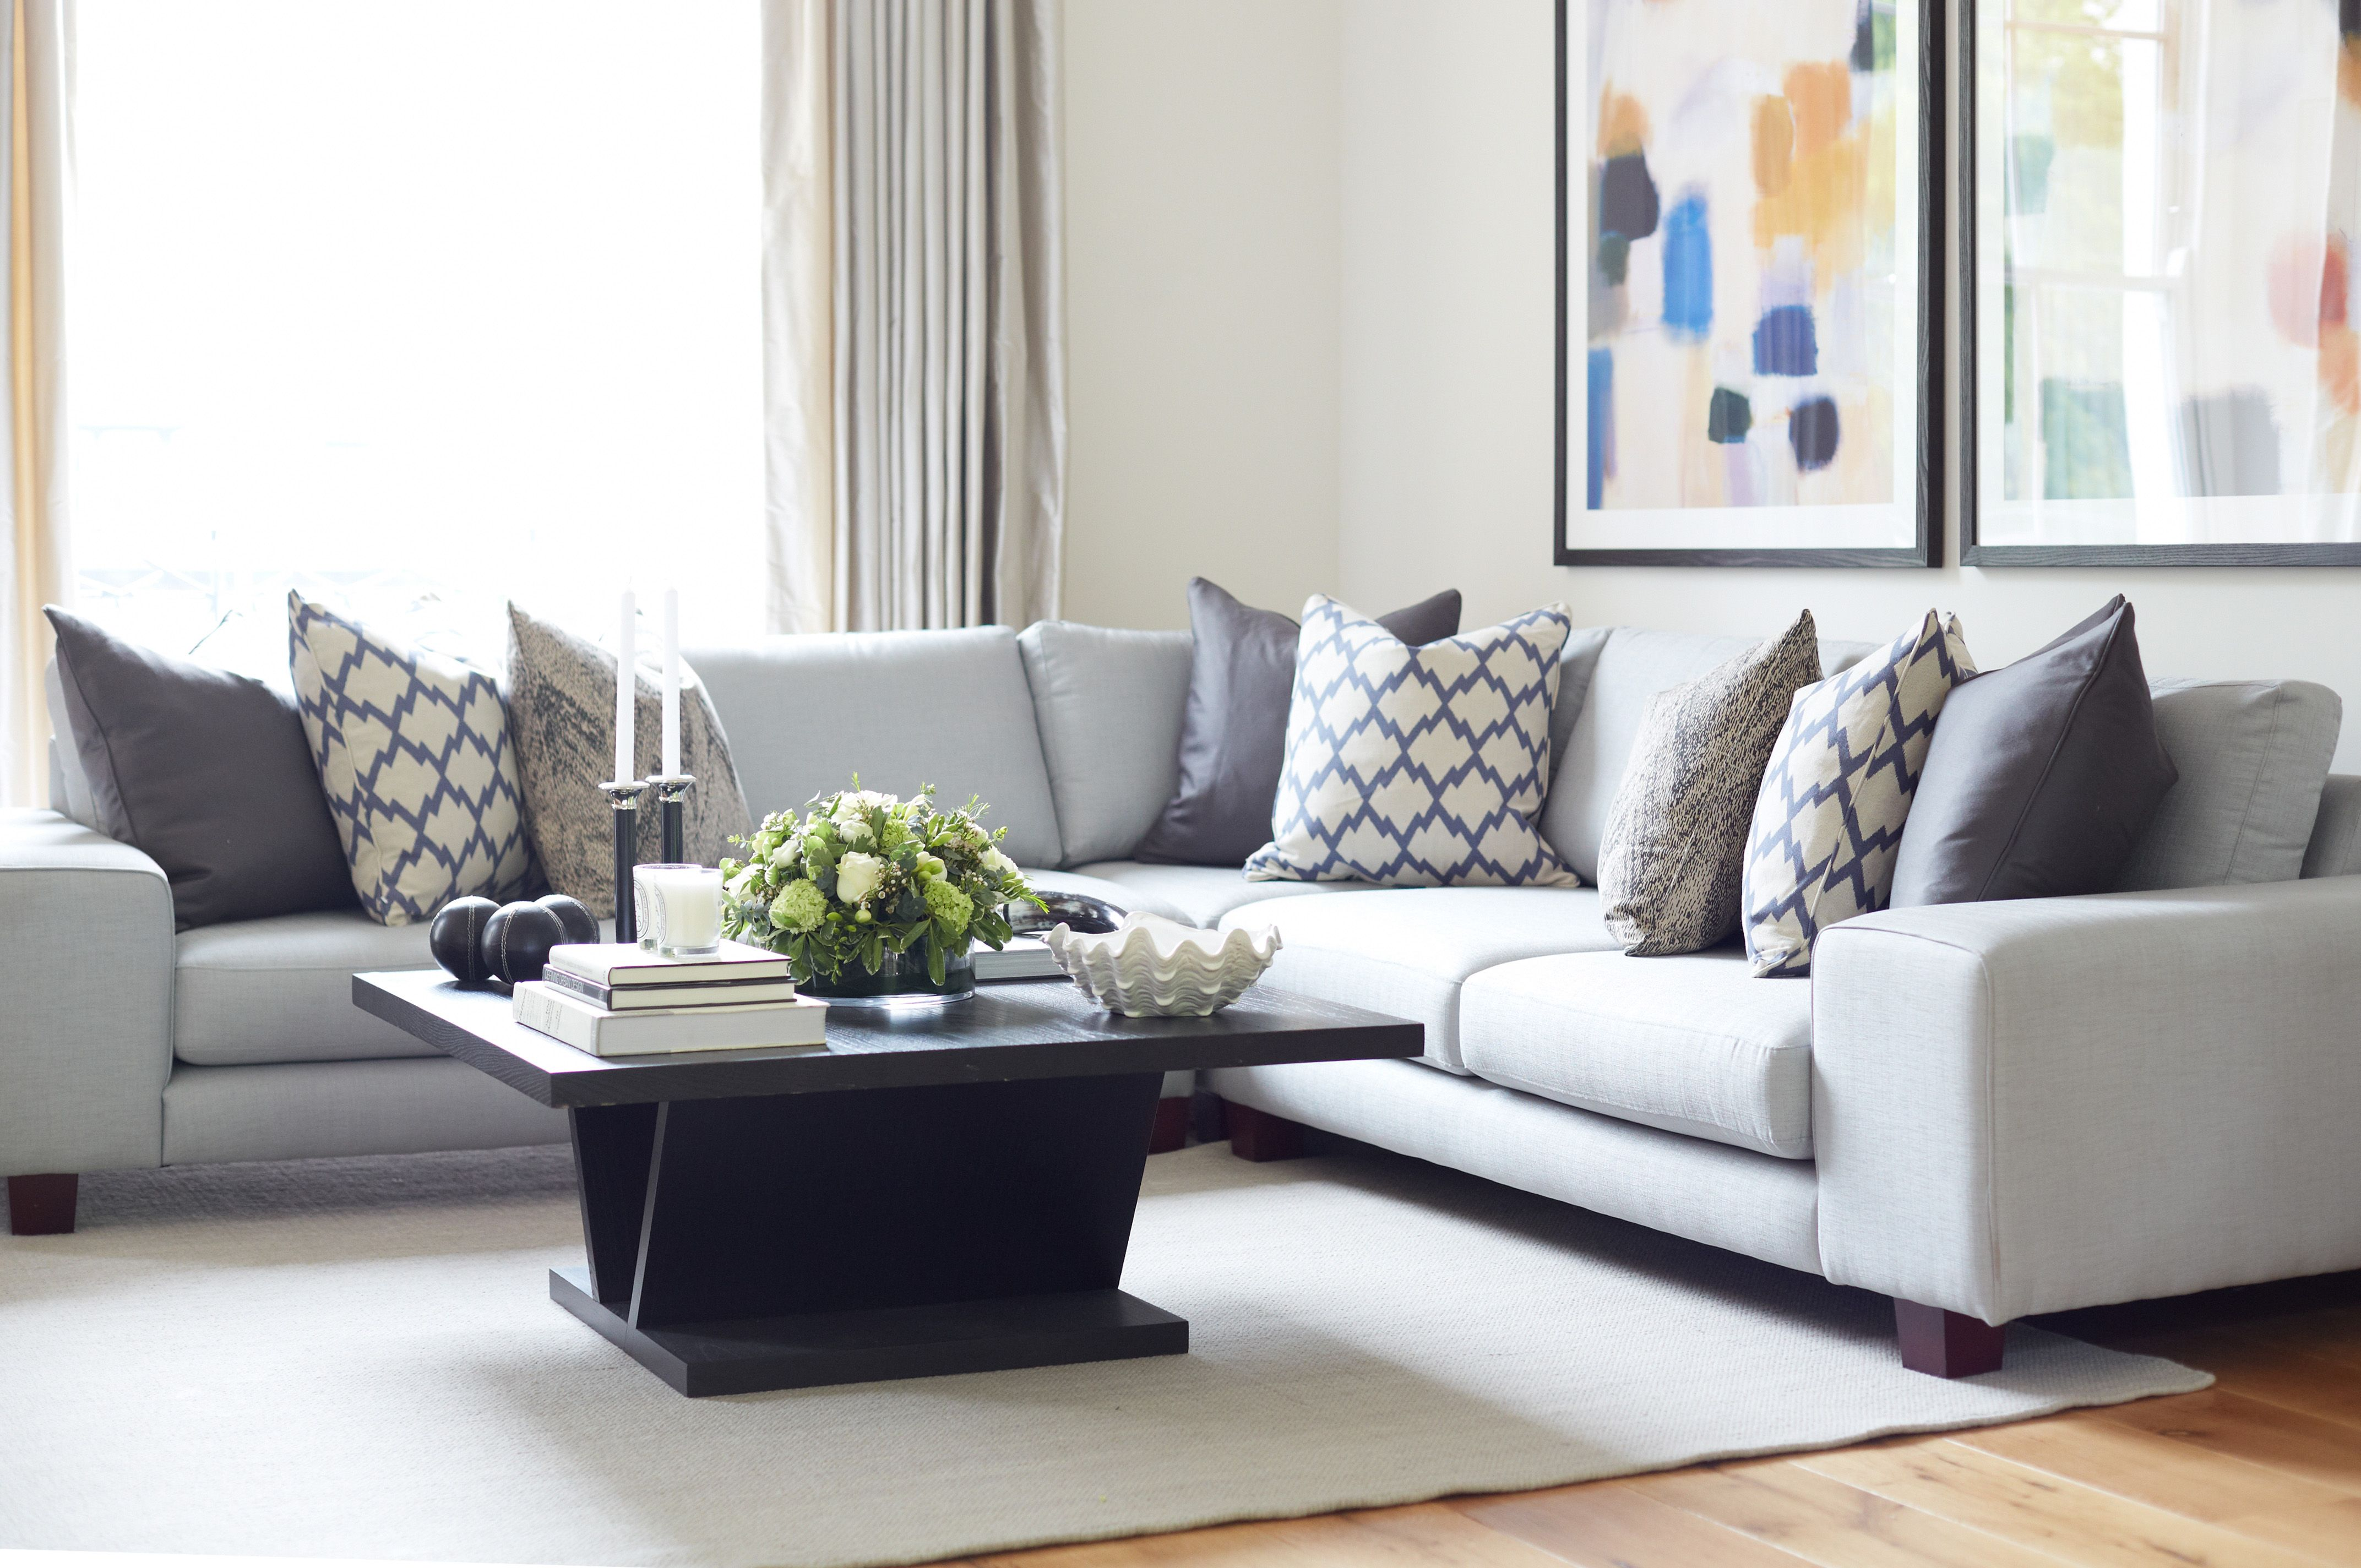 We Used This Light Grey Corner Sofa To Create A Relaxed Feeling In The Reception Room Of Sofa Cushions Arrangement Corner Sofa Cushions Corner Sofa Arrangement